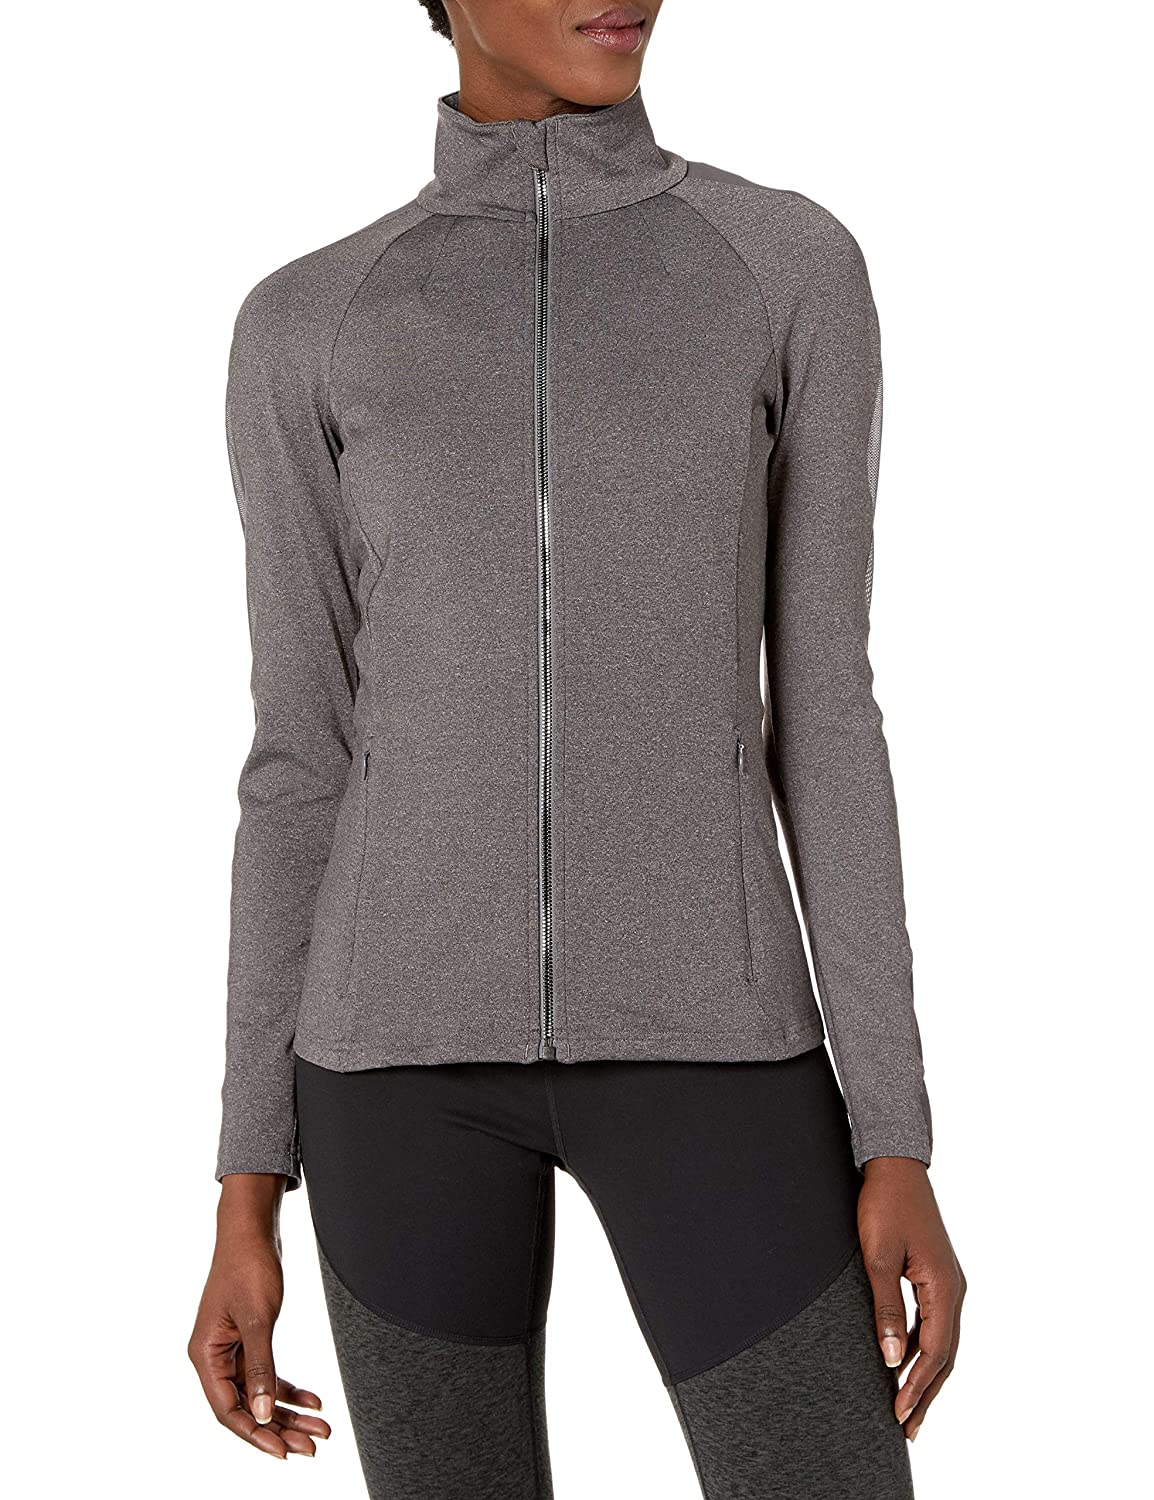 Alo Yoga -Chaqueta de chándal Mujer Stormy Heather: Amazon ...